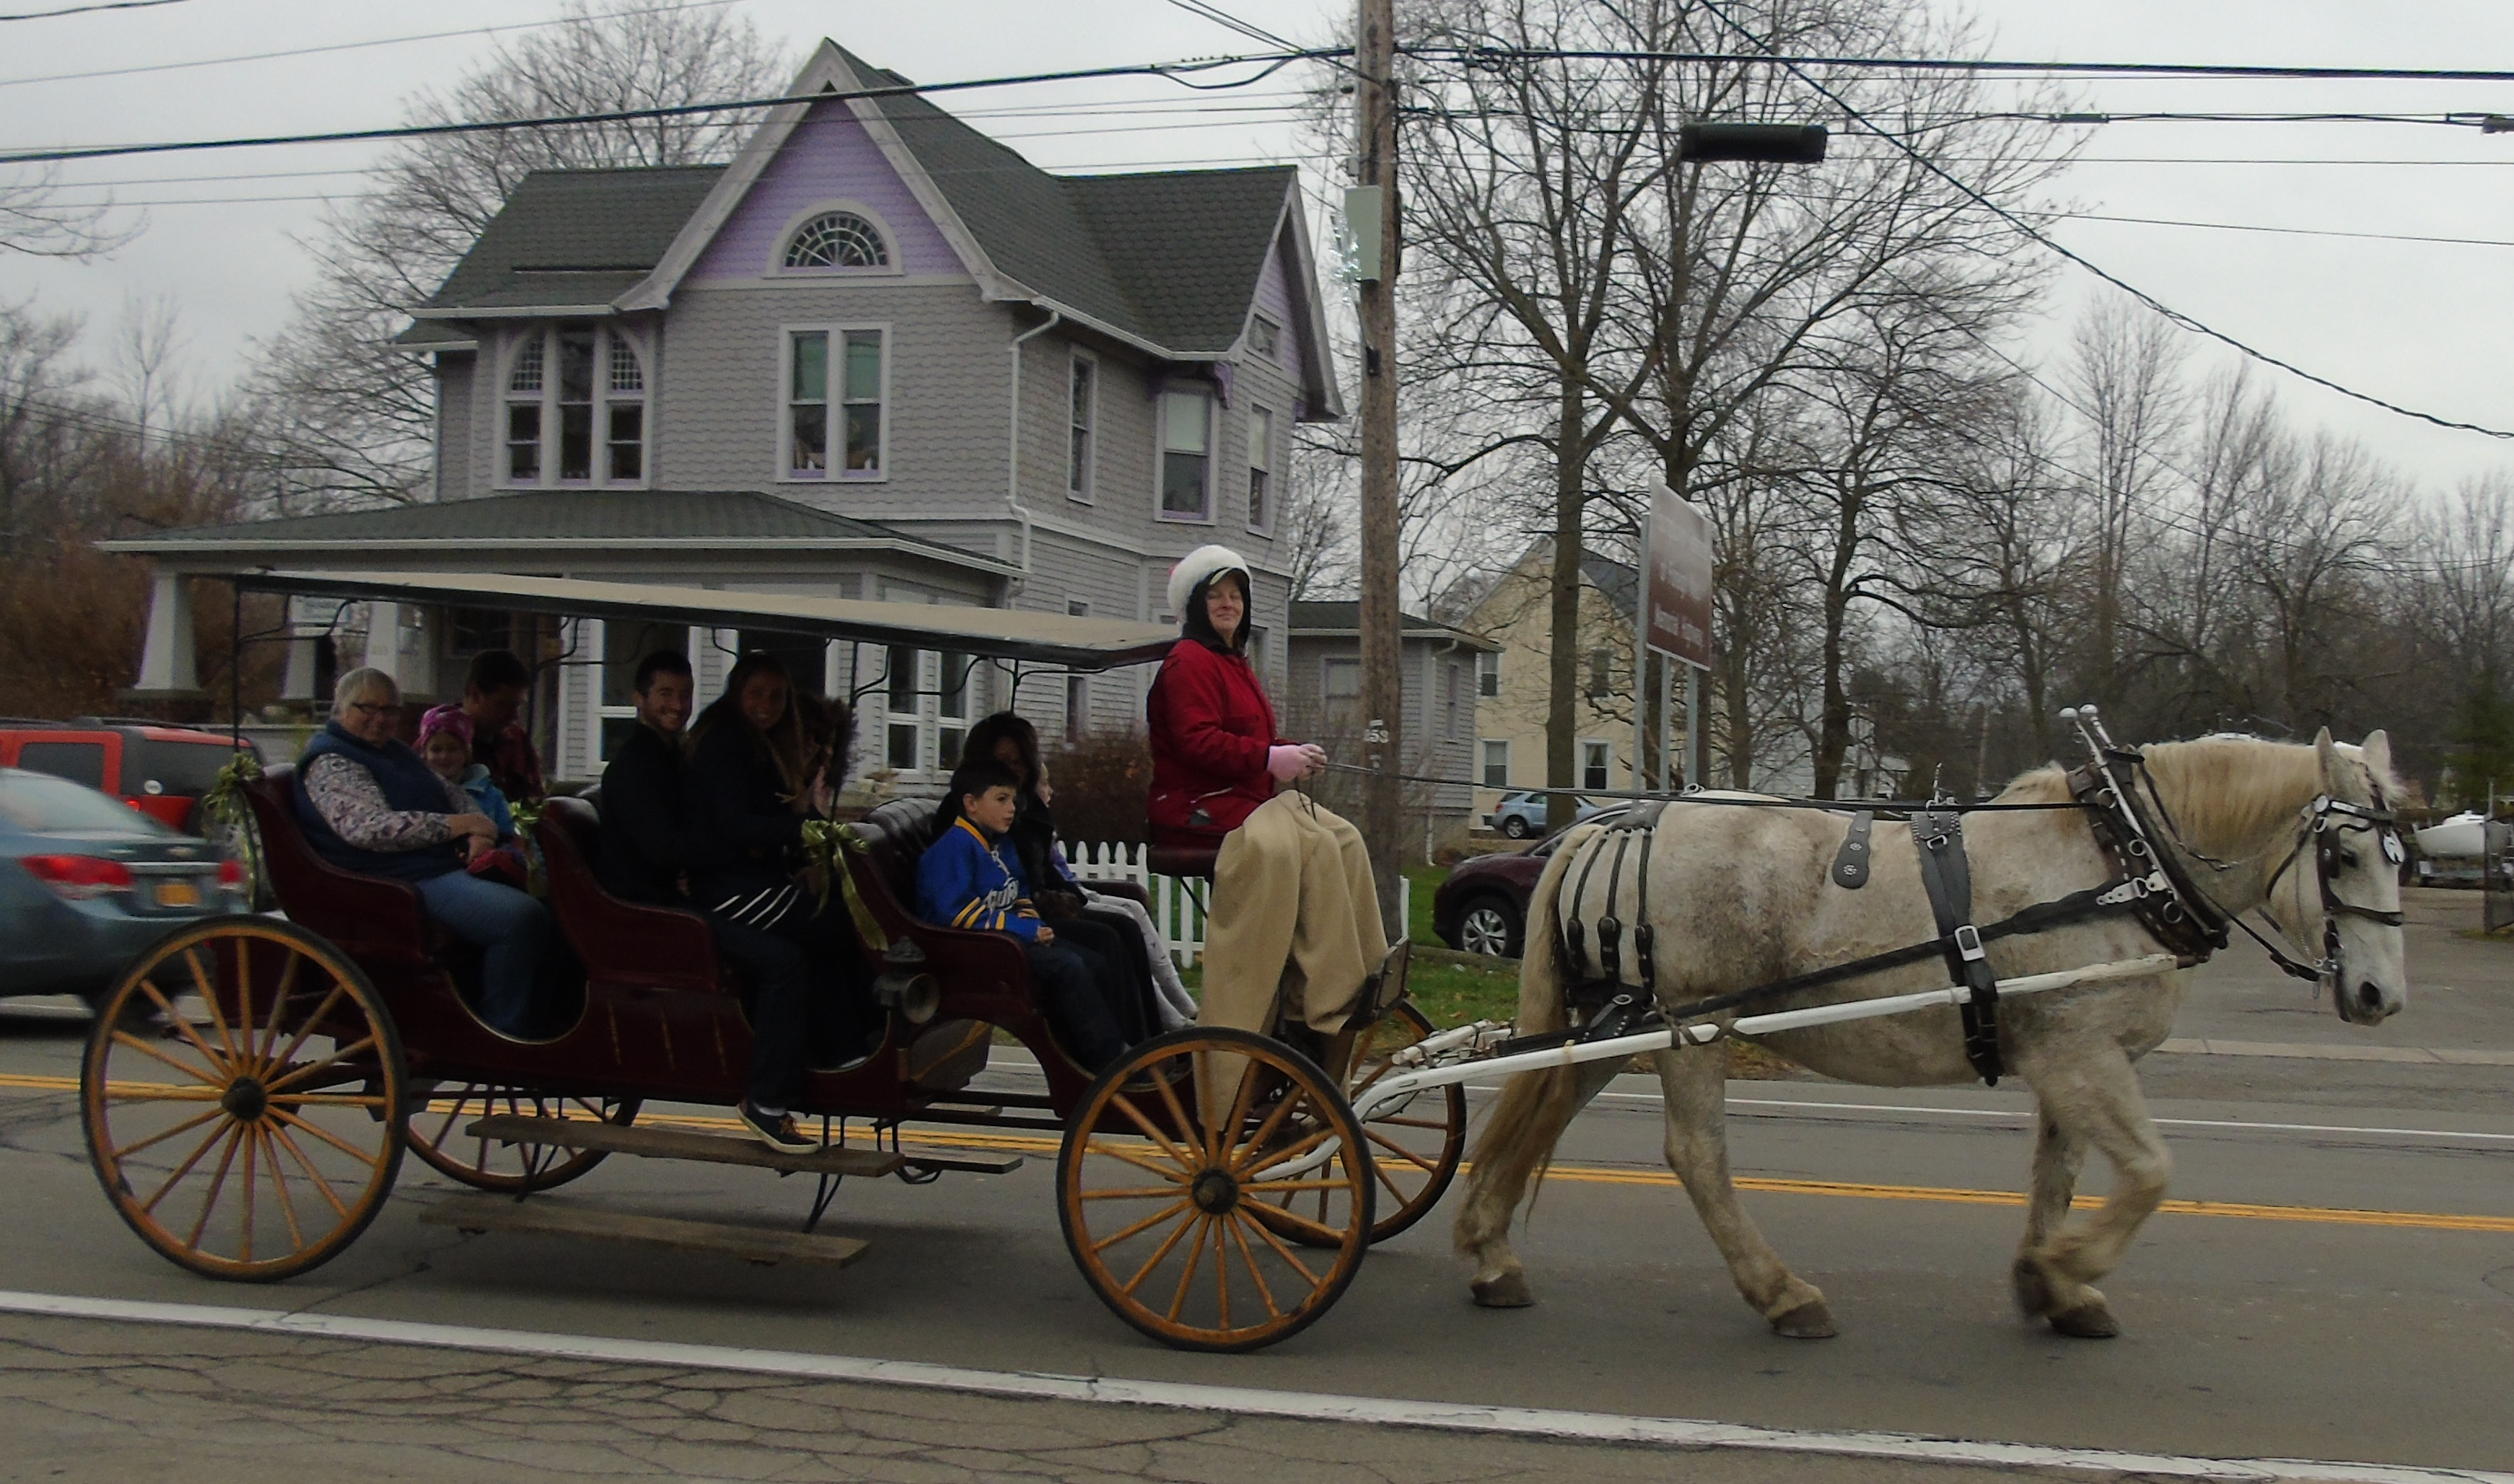 Carriage rides will be offered at Youngstown's Christmas in the Village. (Provided by the Youngstown Recreation Department)